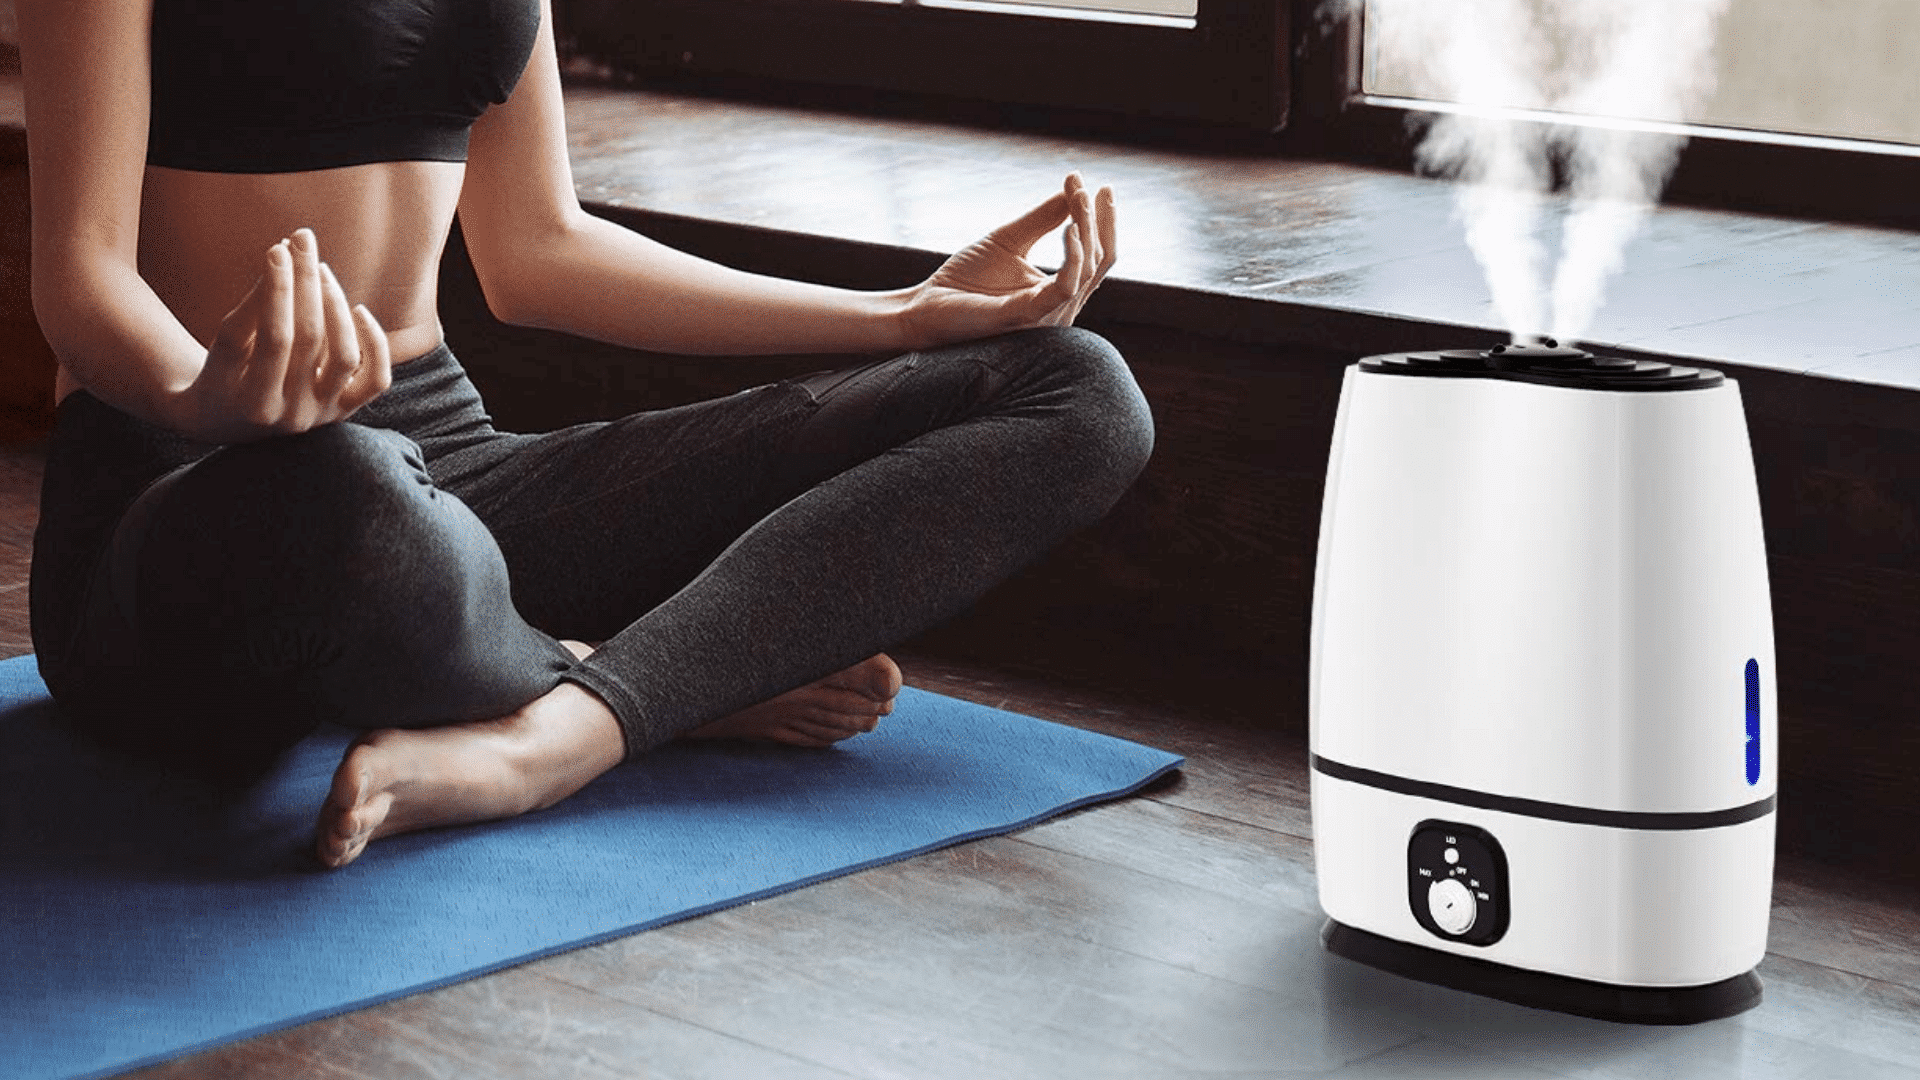 image over everlasting comfort ultrasonic cool mist humidifier beside woman doing yoga